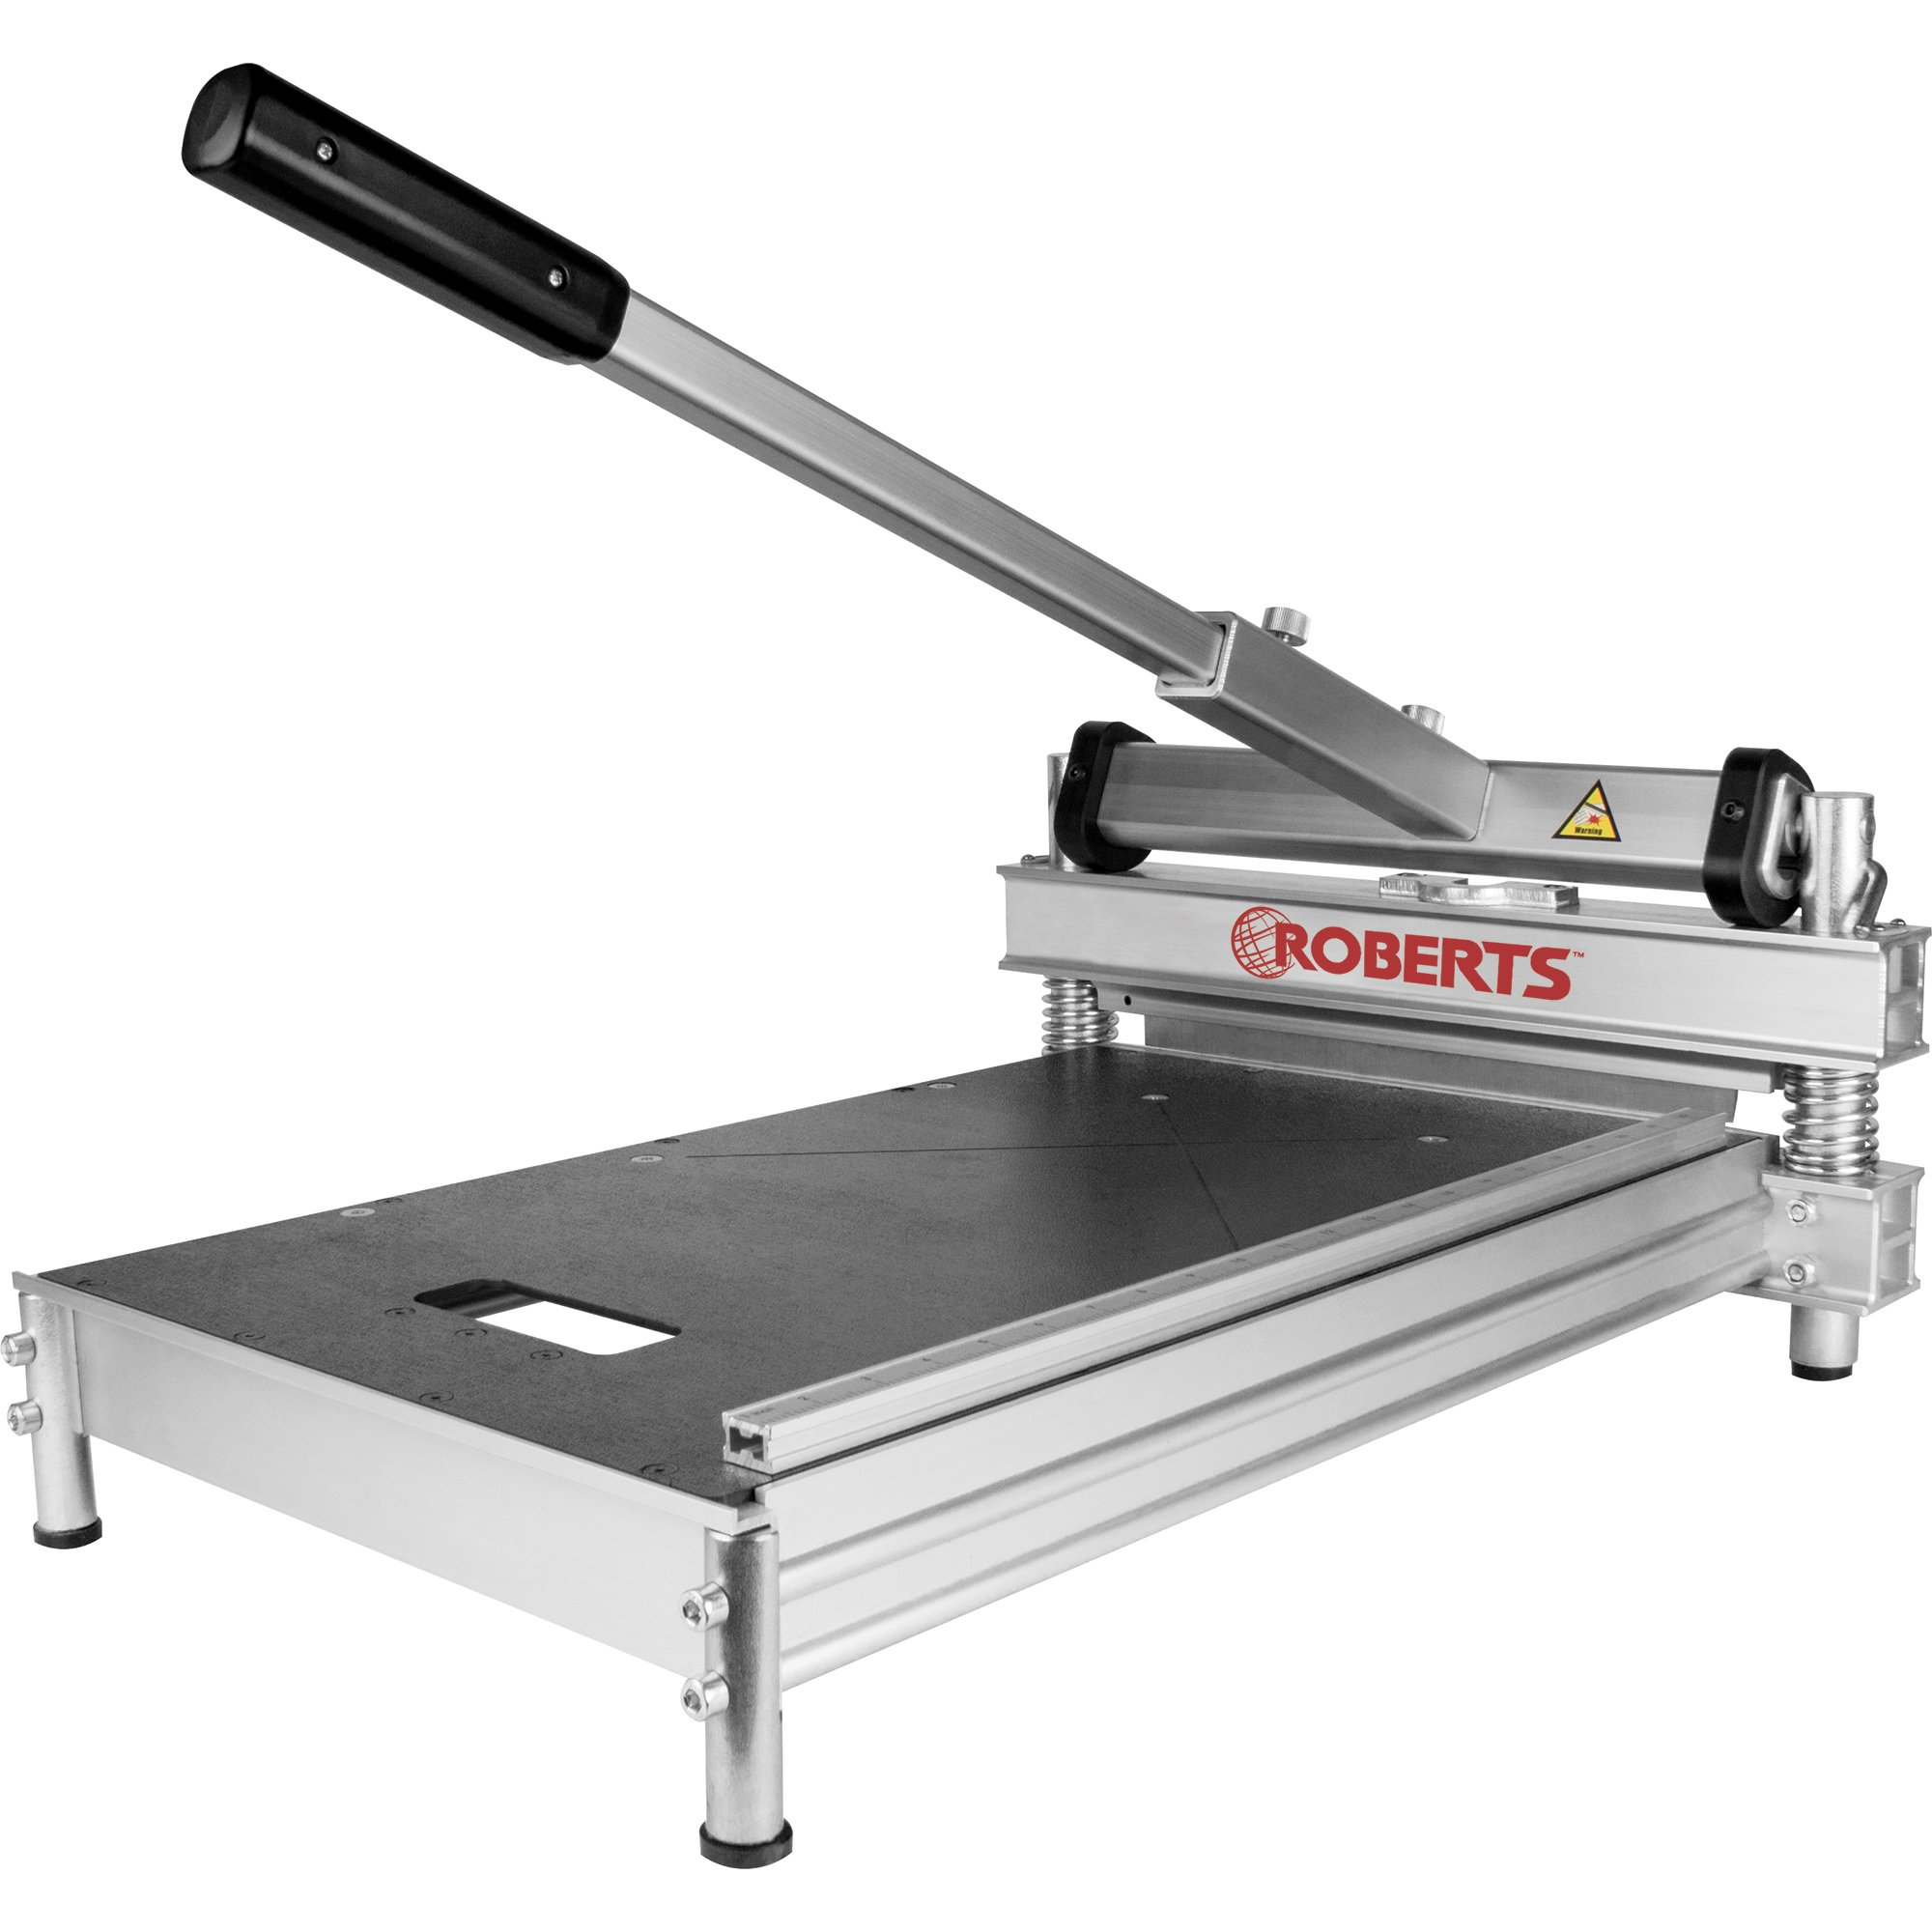 Roberts 10-94 Multi-Floor Cutter, 13-inch by Roberts